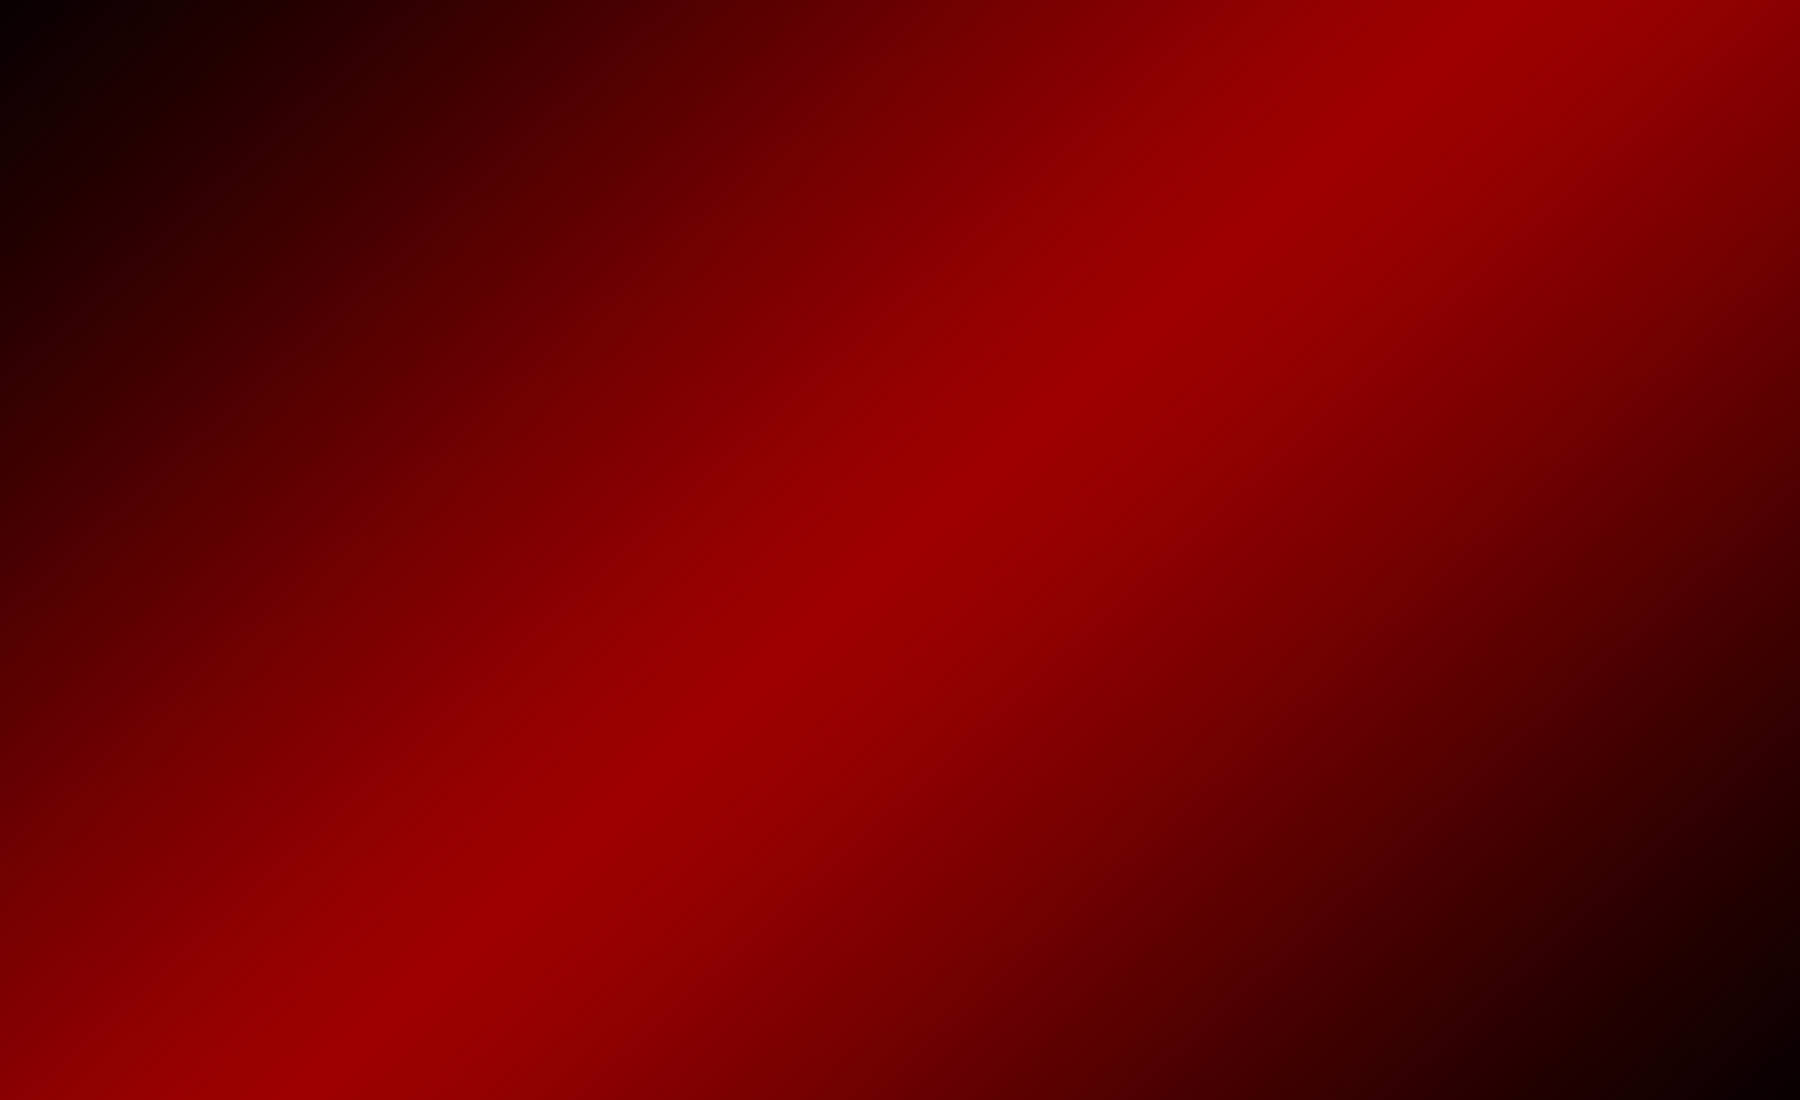 red and black gradient - photo #8